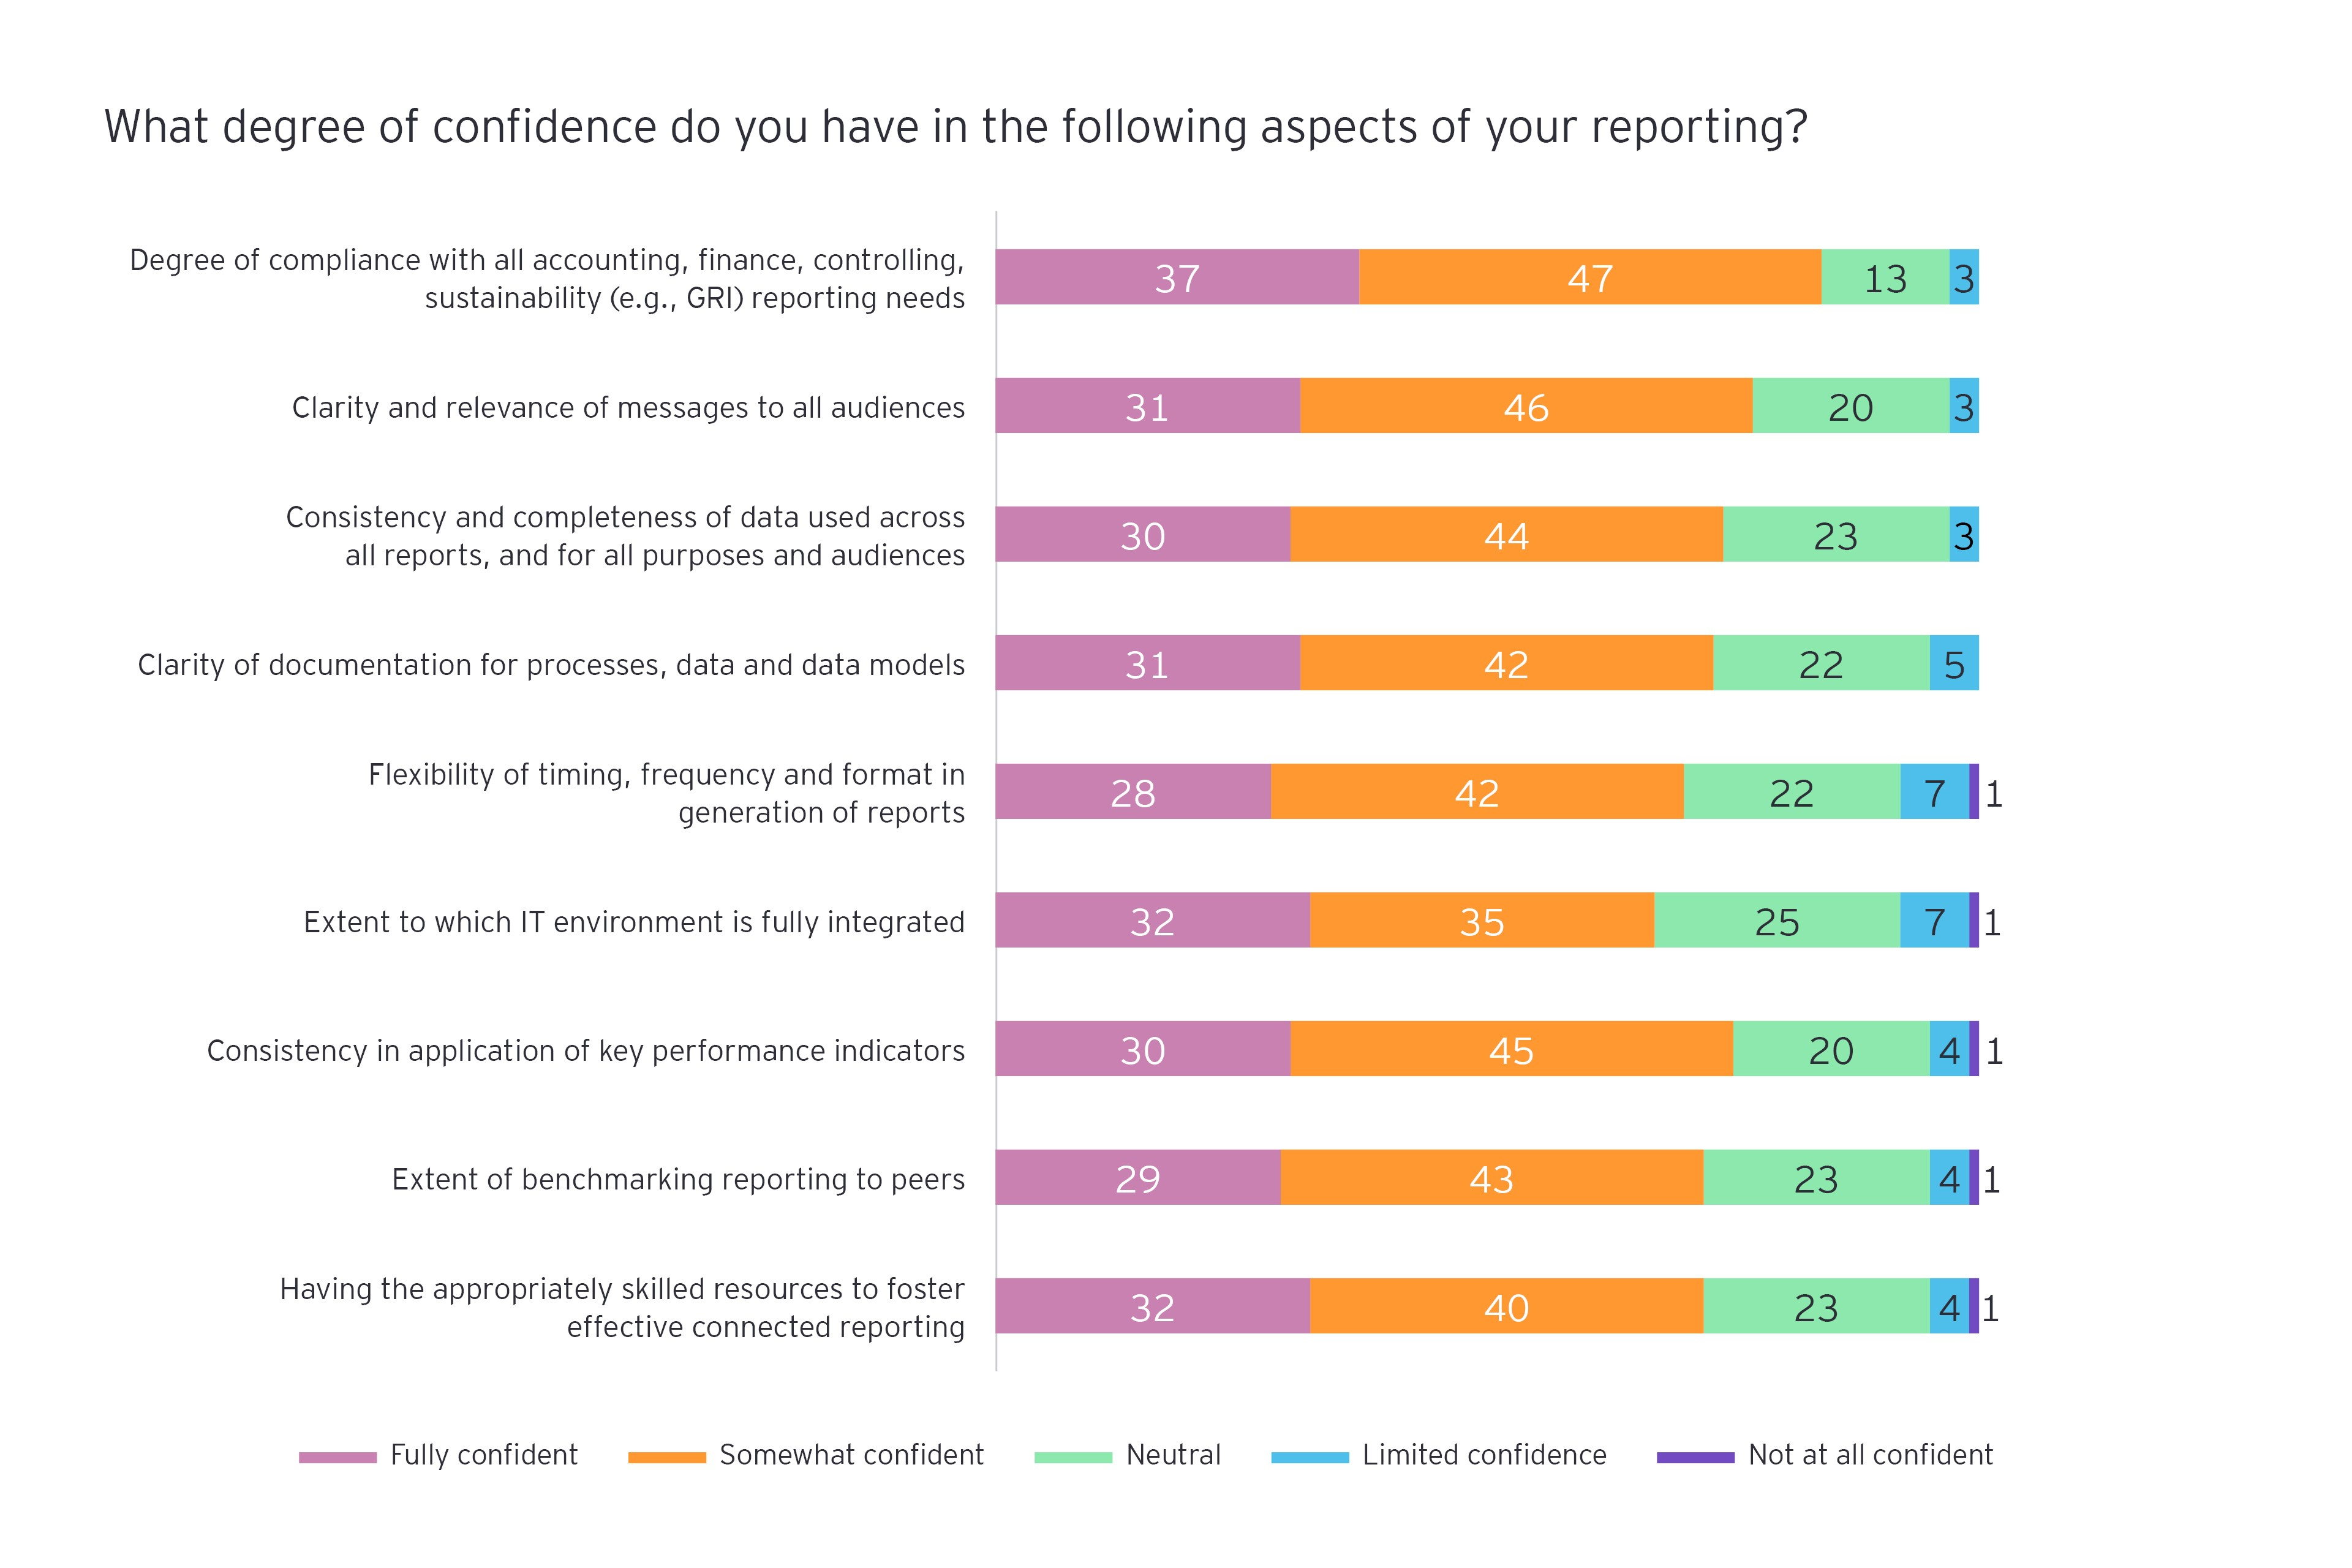 What degree of confidence do you have in the following aspects of your reporting?